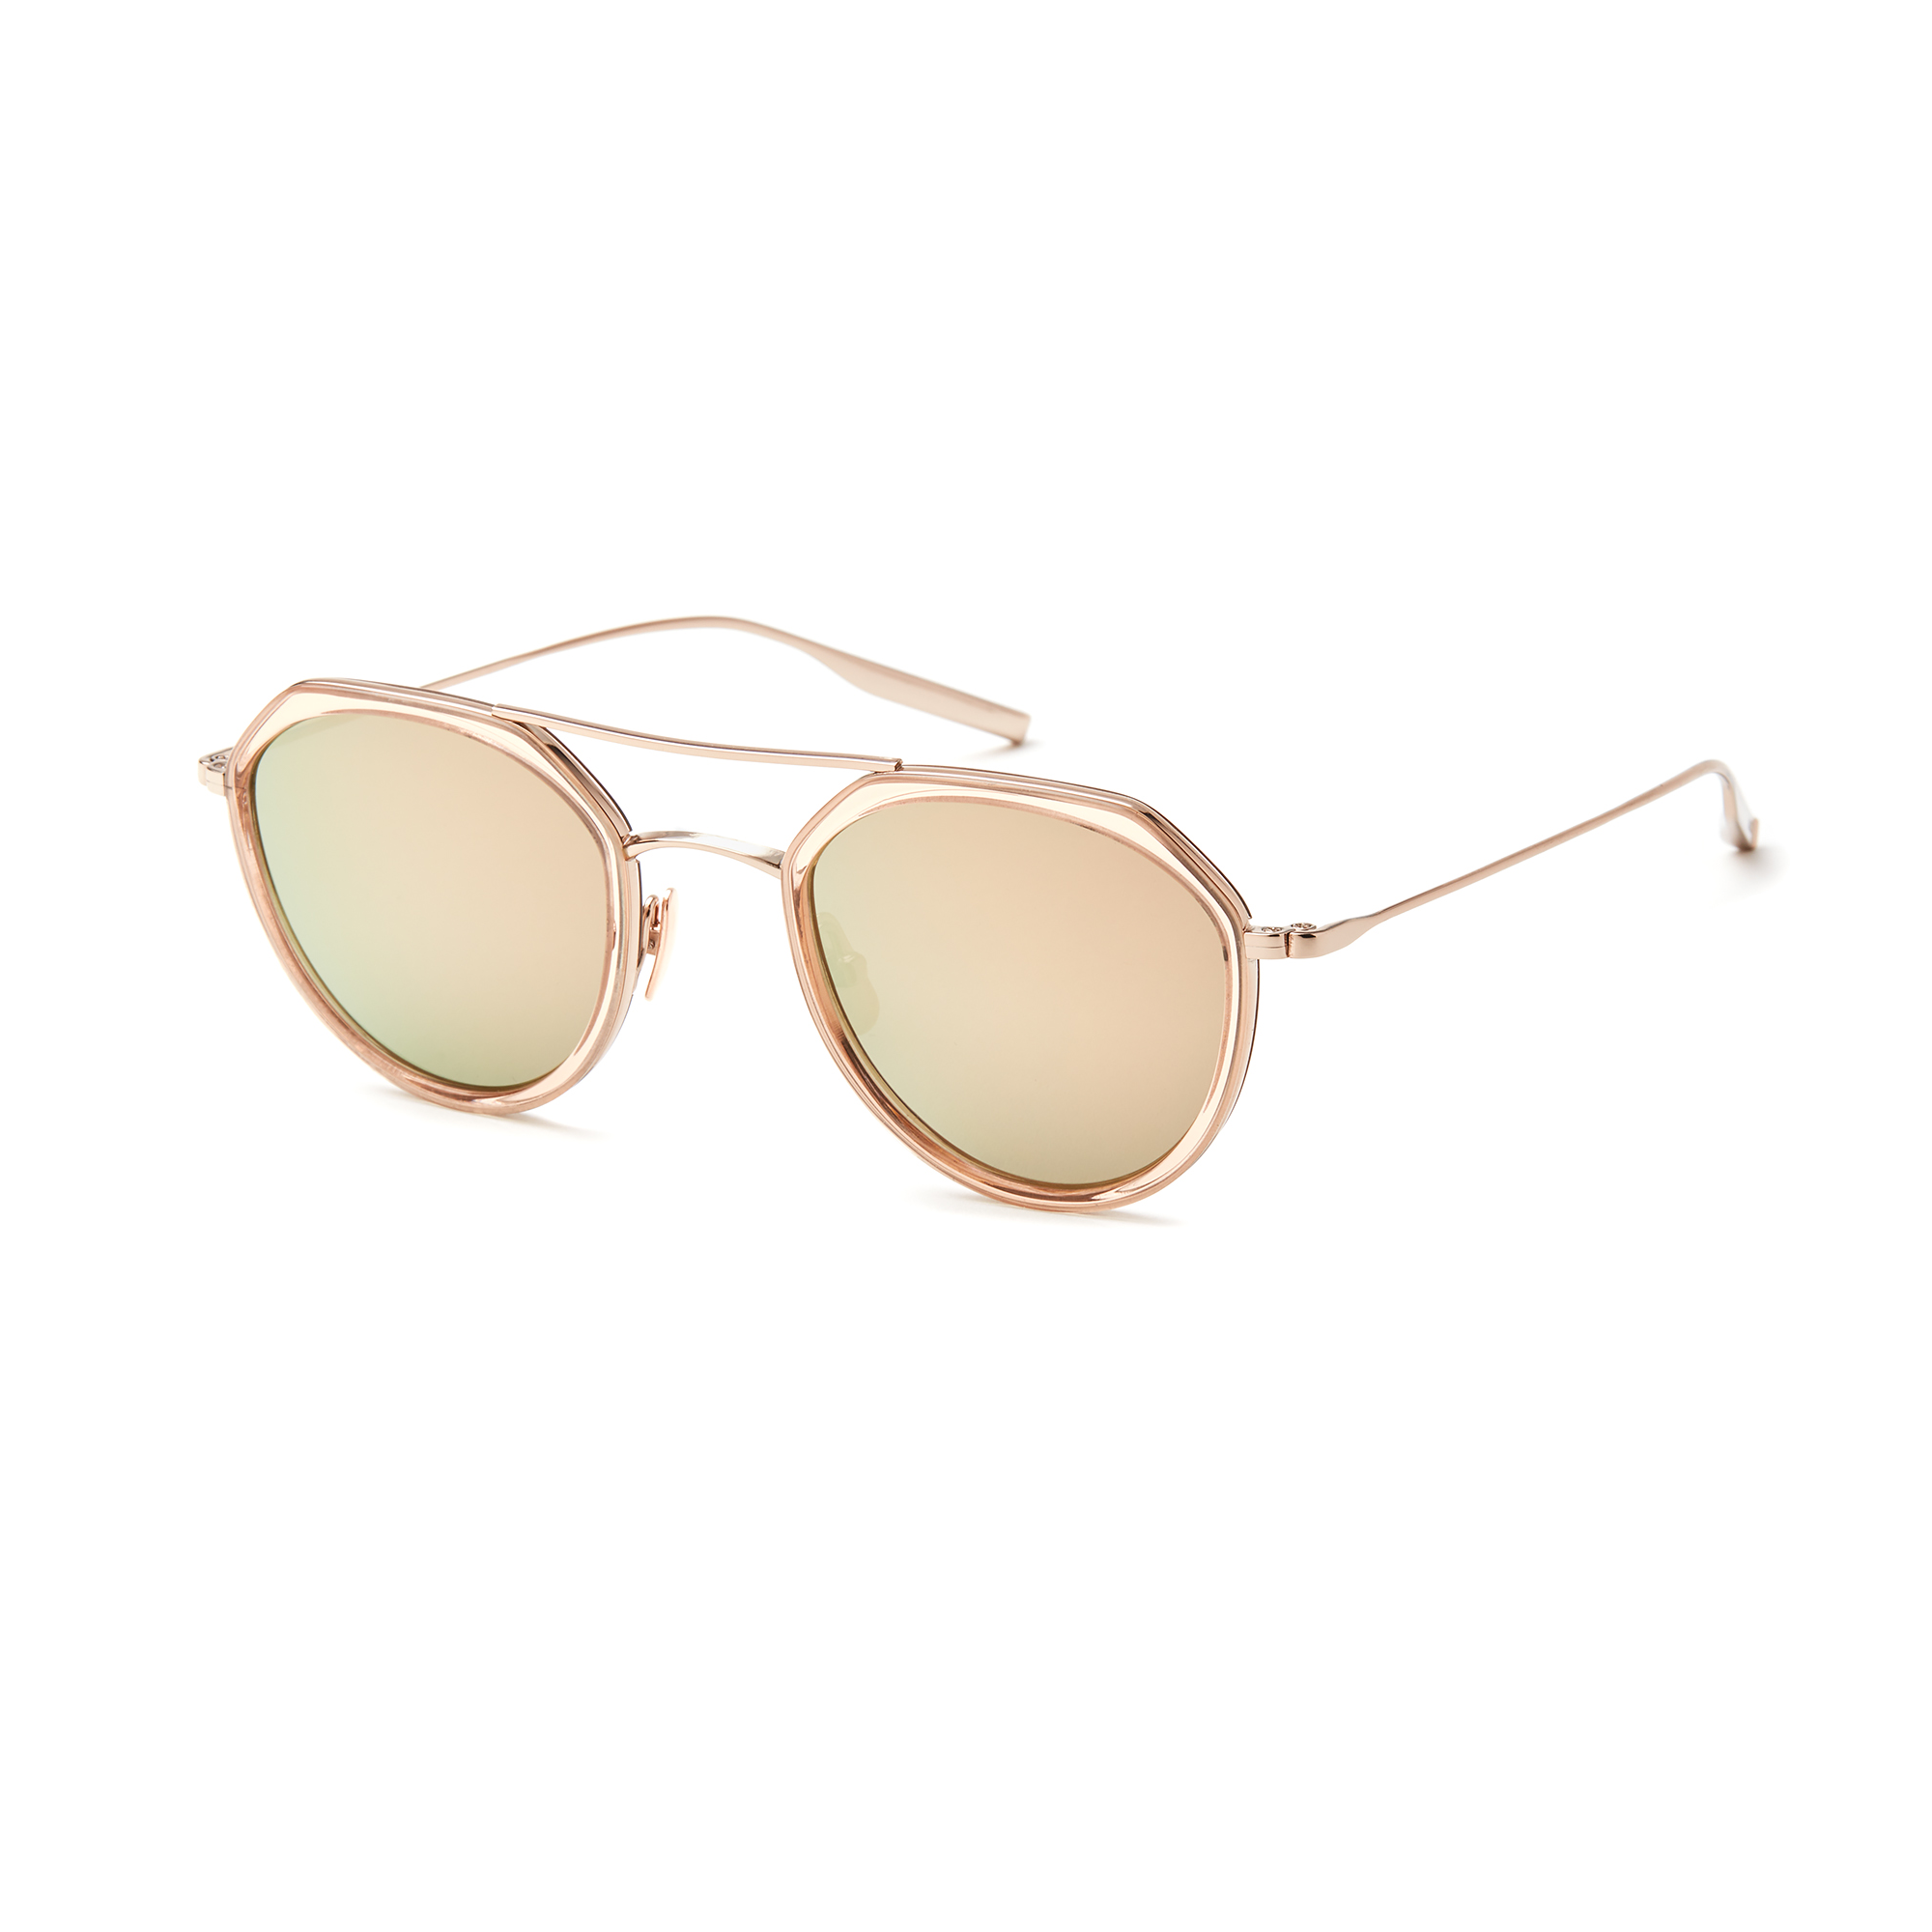 DIBERGI - THE OPTICAL. COThis 80's inspired silhouette adds a new aesthetic of simplicity in this Rose Gold sun by SALT. Modern style combined with quality materials delivers a sunglass frame she's going to love for years.image: SALT.